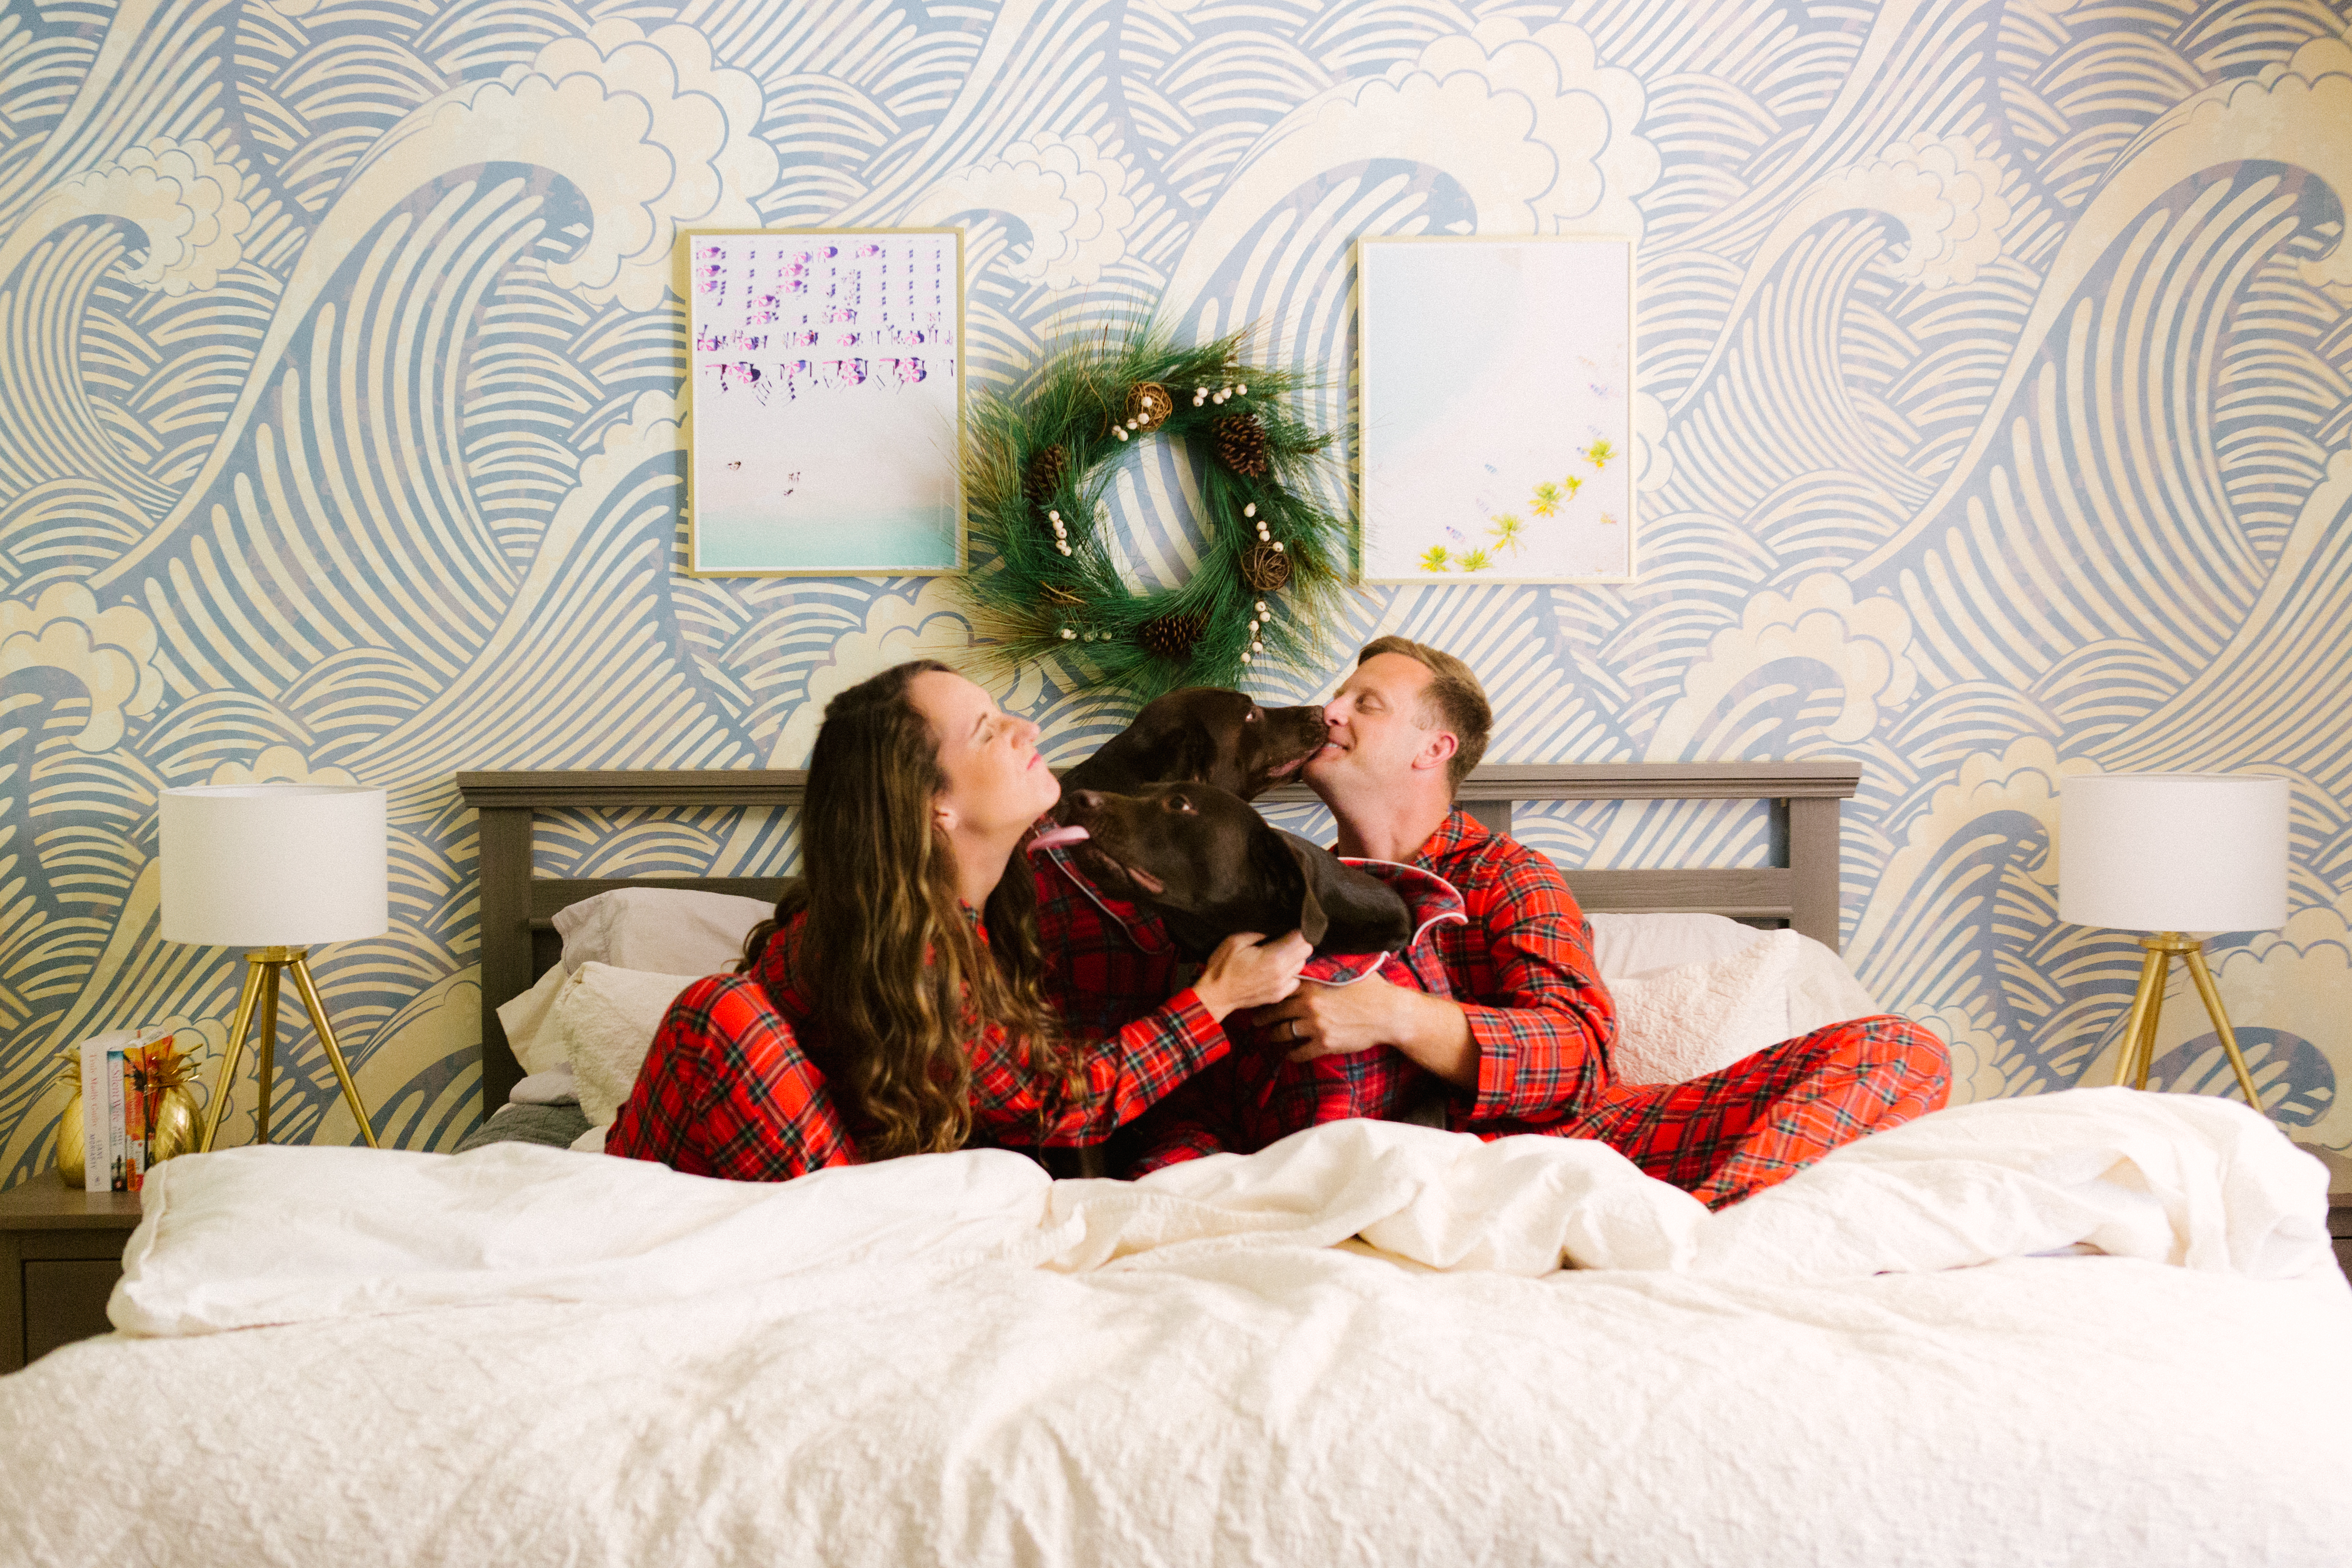 Our 2017 Christmas Card Reveal - Family Photos In Christmas Pajamas - Dogs In Pajamas - Christmas Pajamas - Matching Family Pajamas - Communikait by Kait Hanson